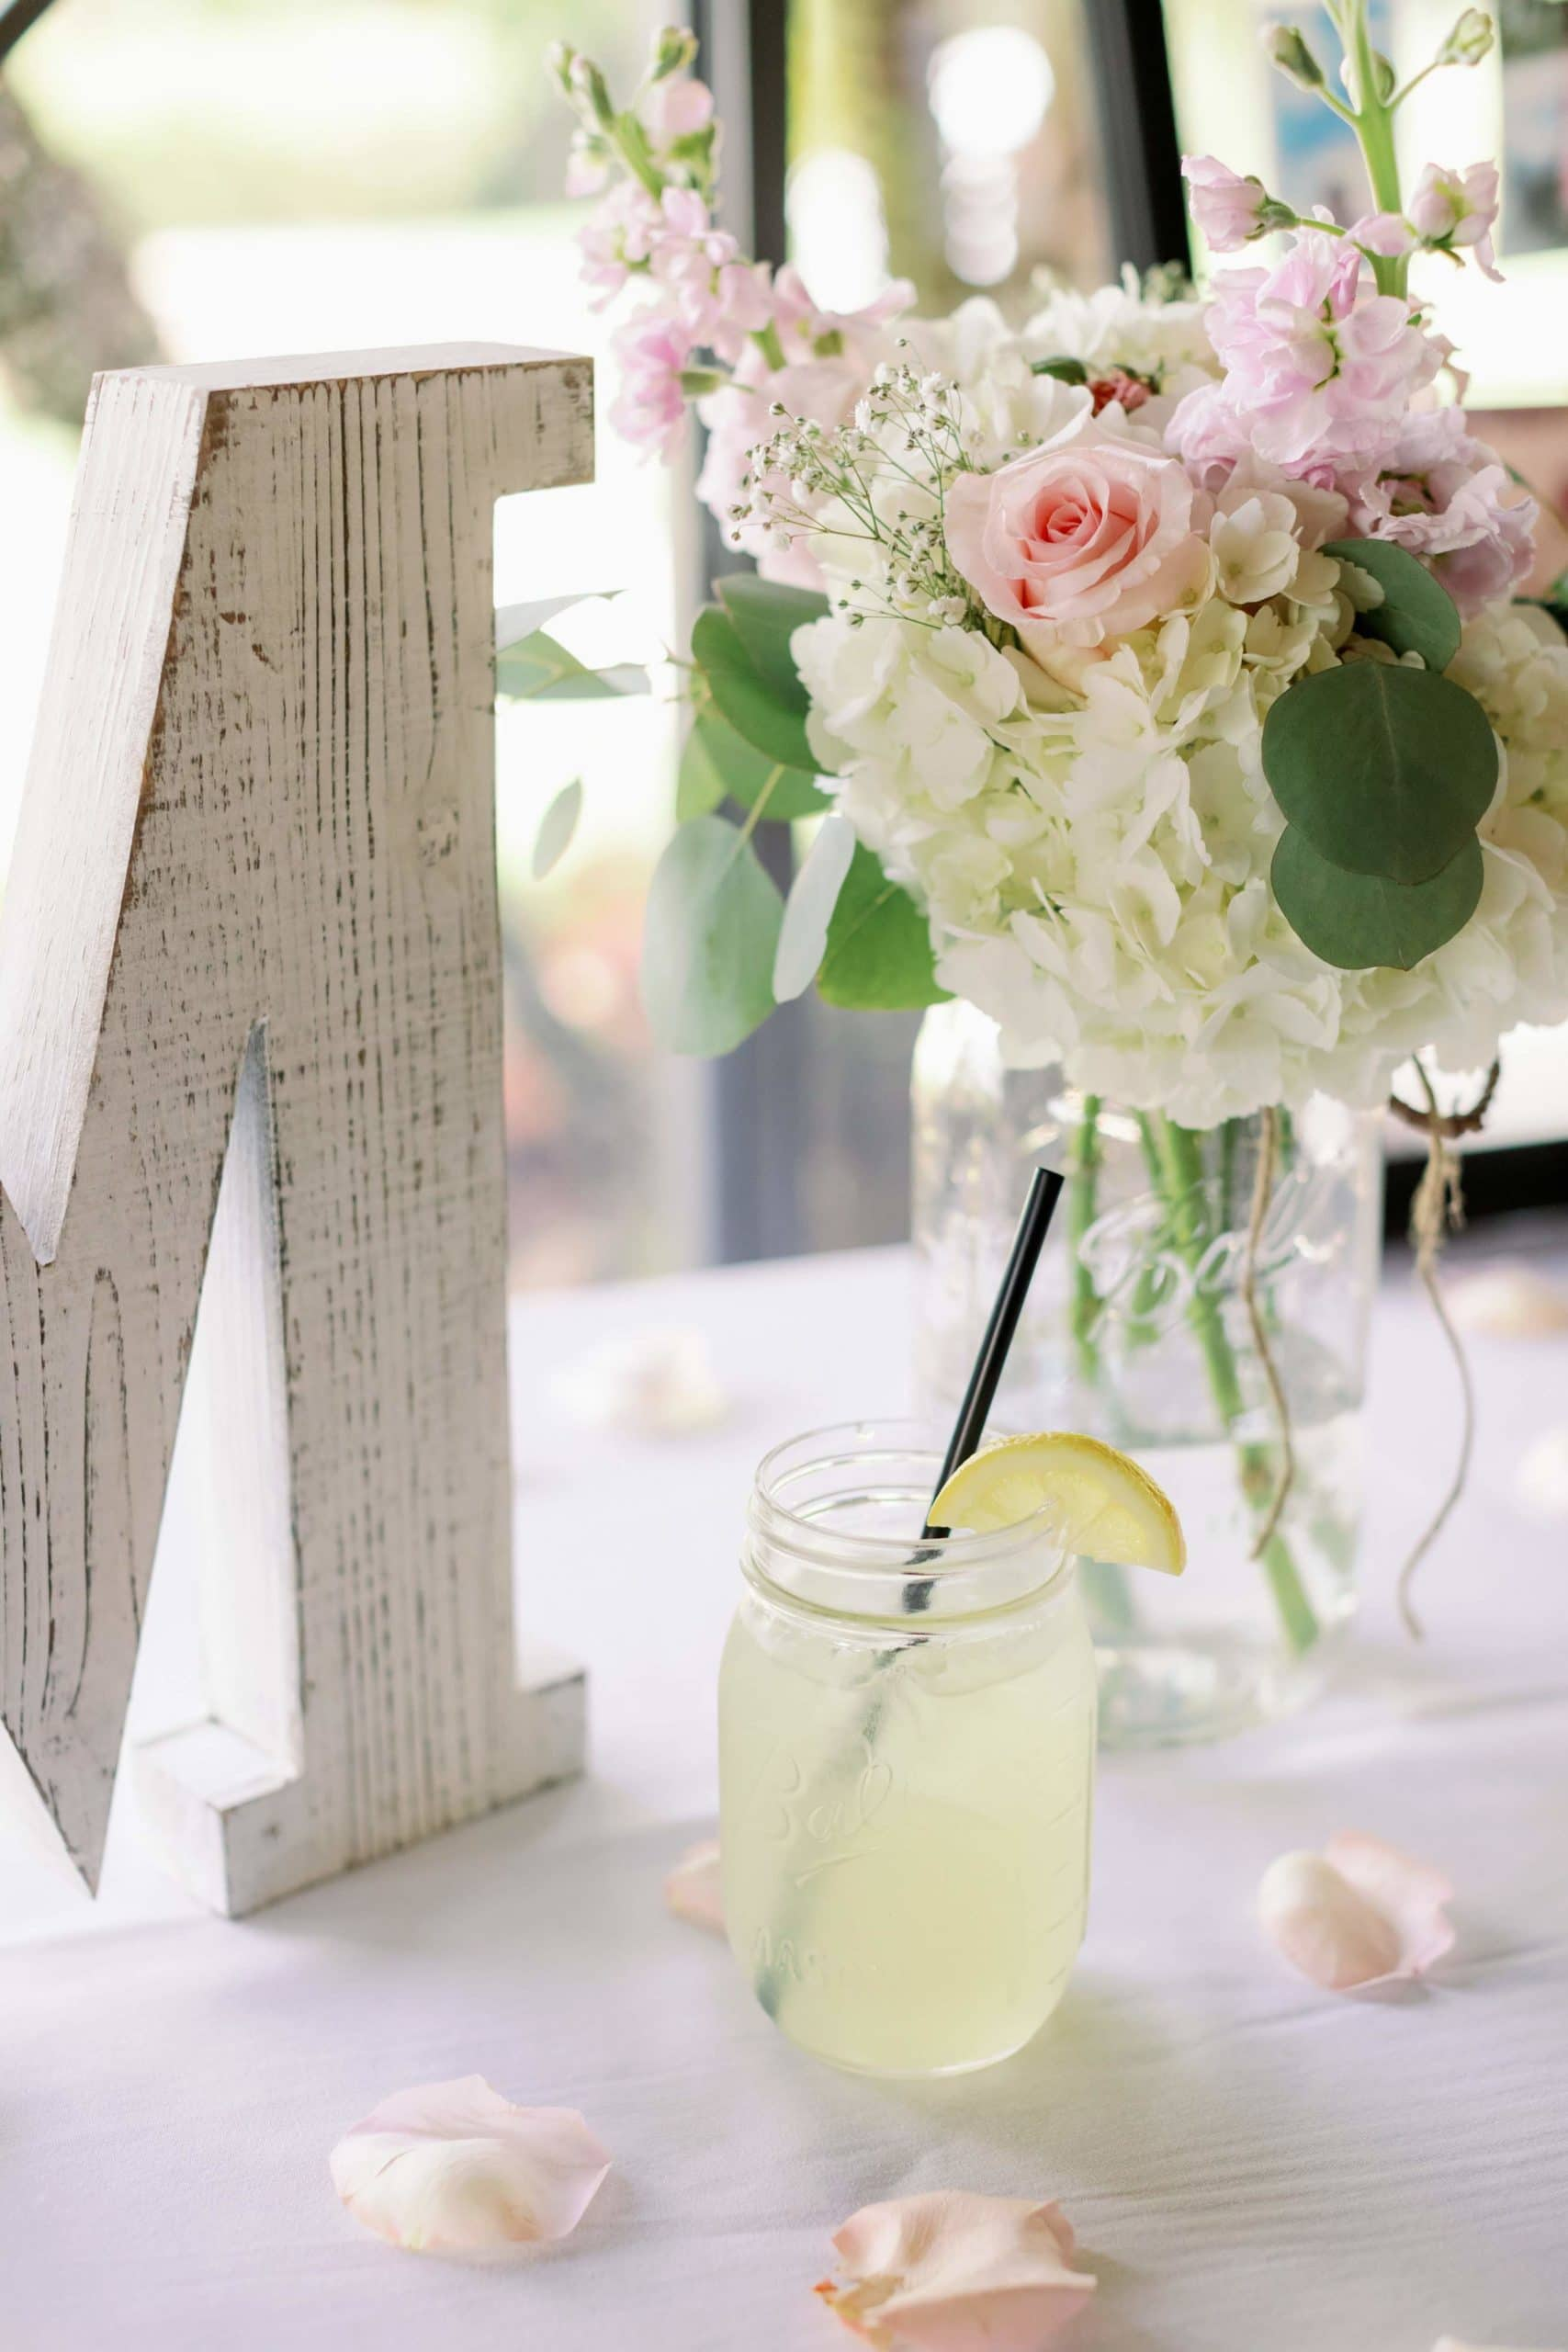 Grey M with mimosa and flowers from wedding